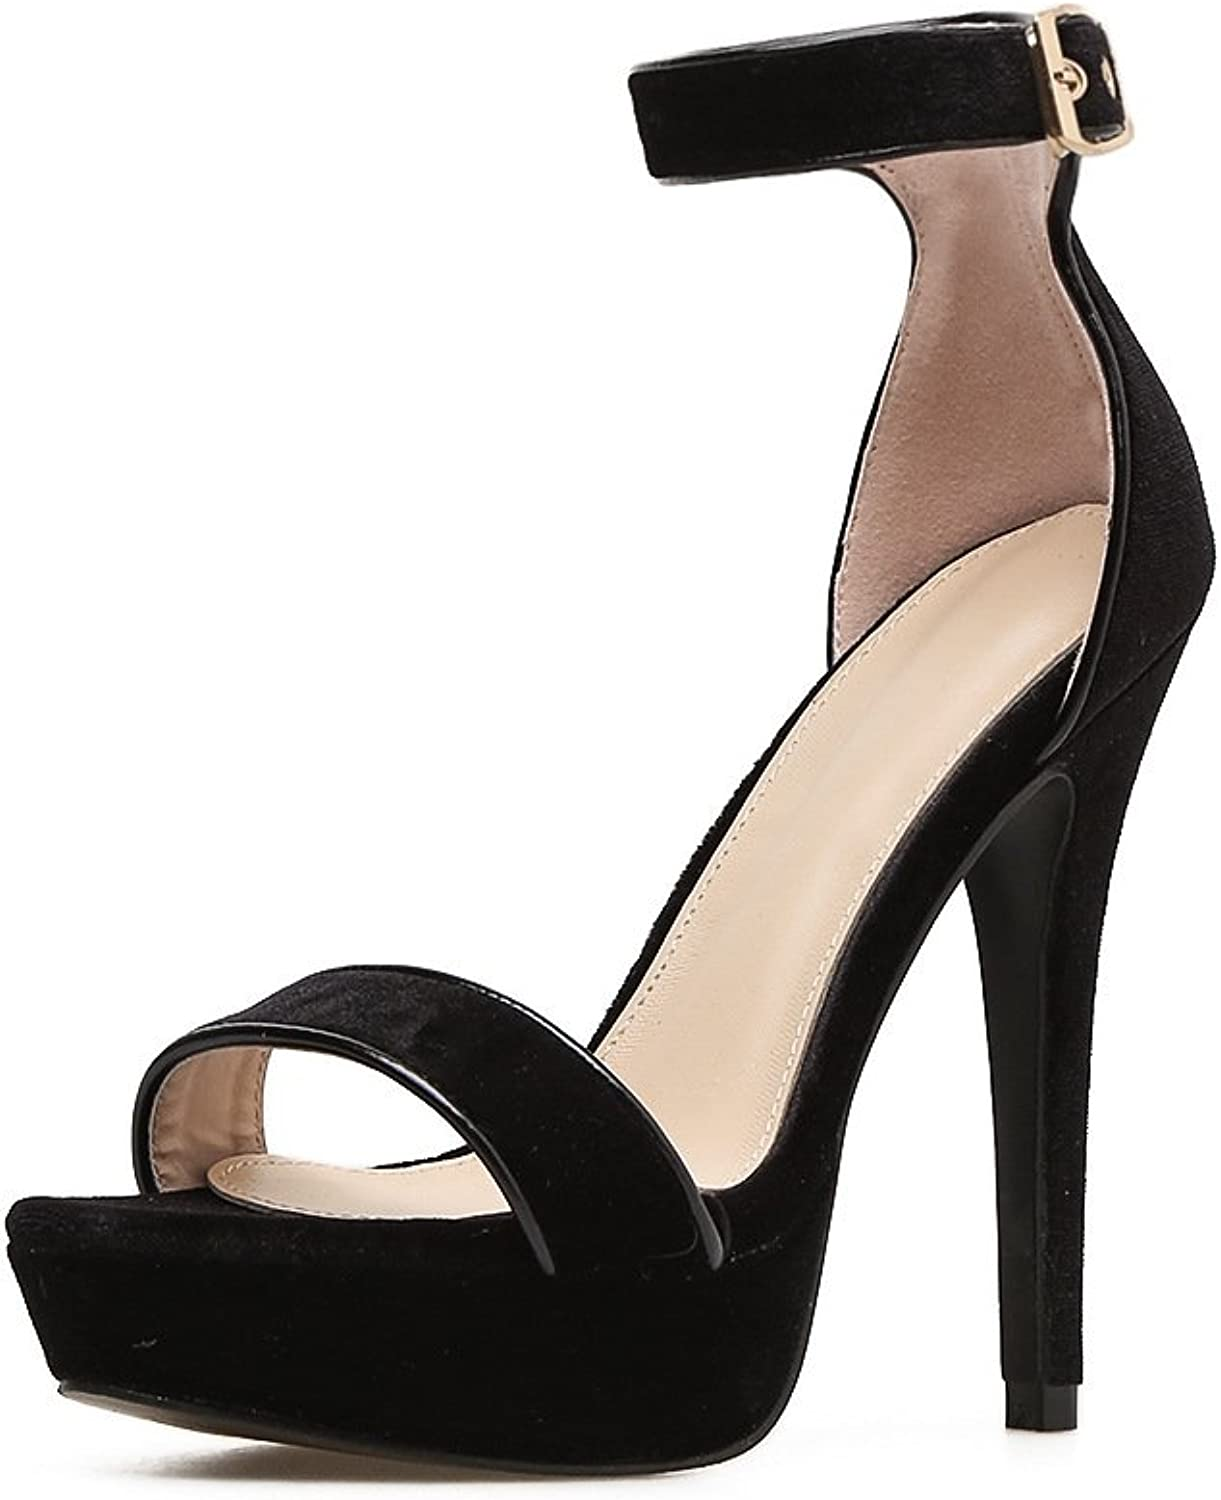 Waterproof Taiwan high-heeled sandals Women's Summer new thin and flat with balcony and sexy night high-heel shoes